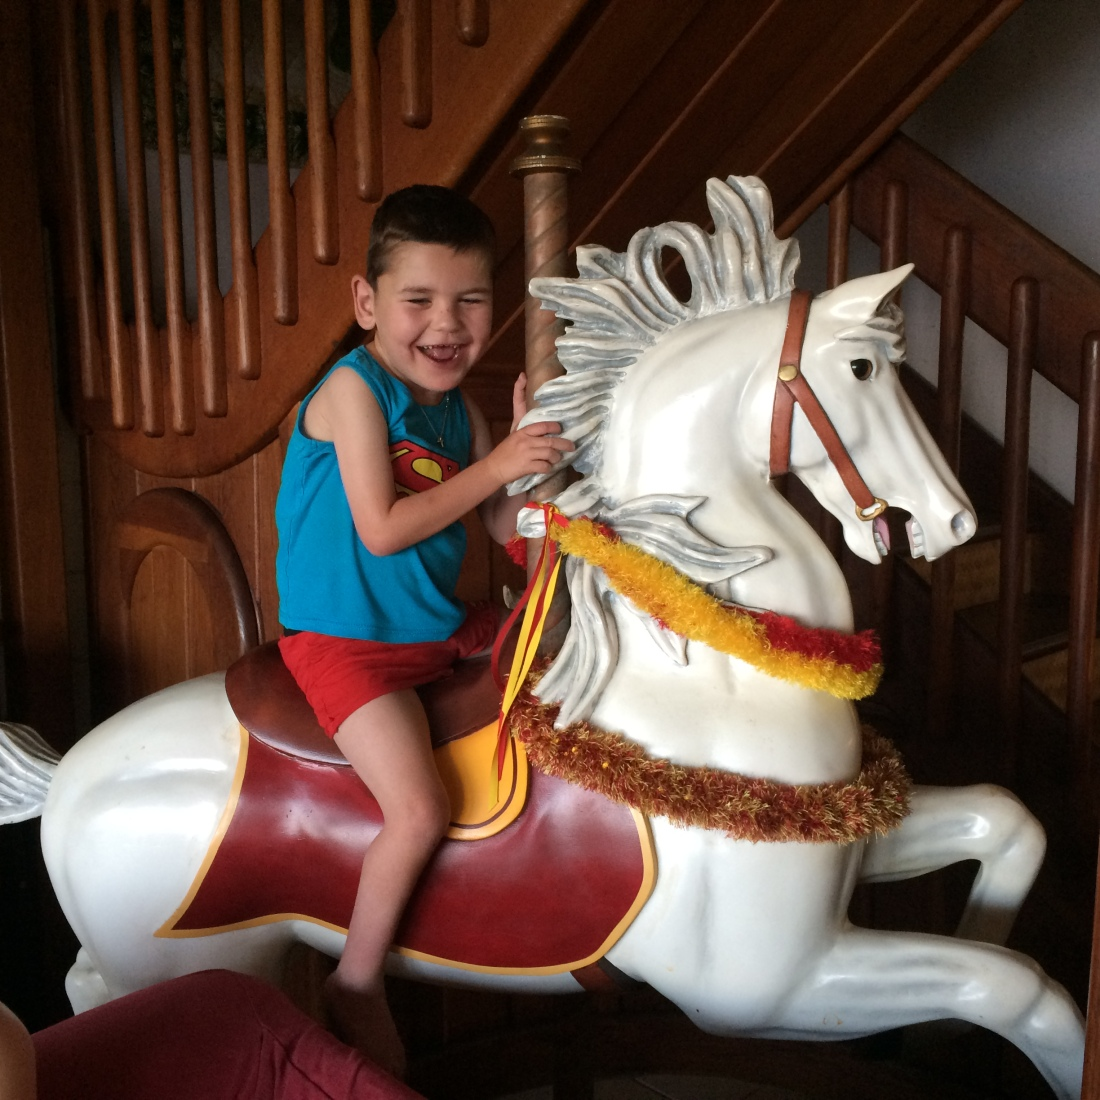 Shhhh, I don't think we were supposed to sit on it but there was a carousel horse in the middle of our condo!